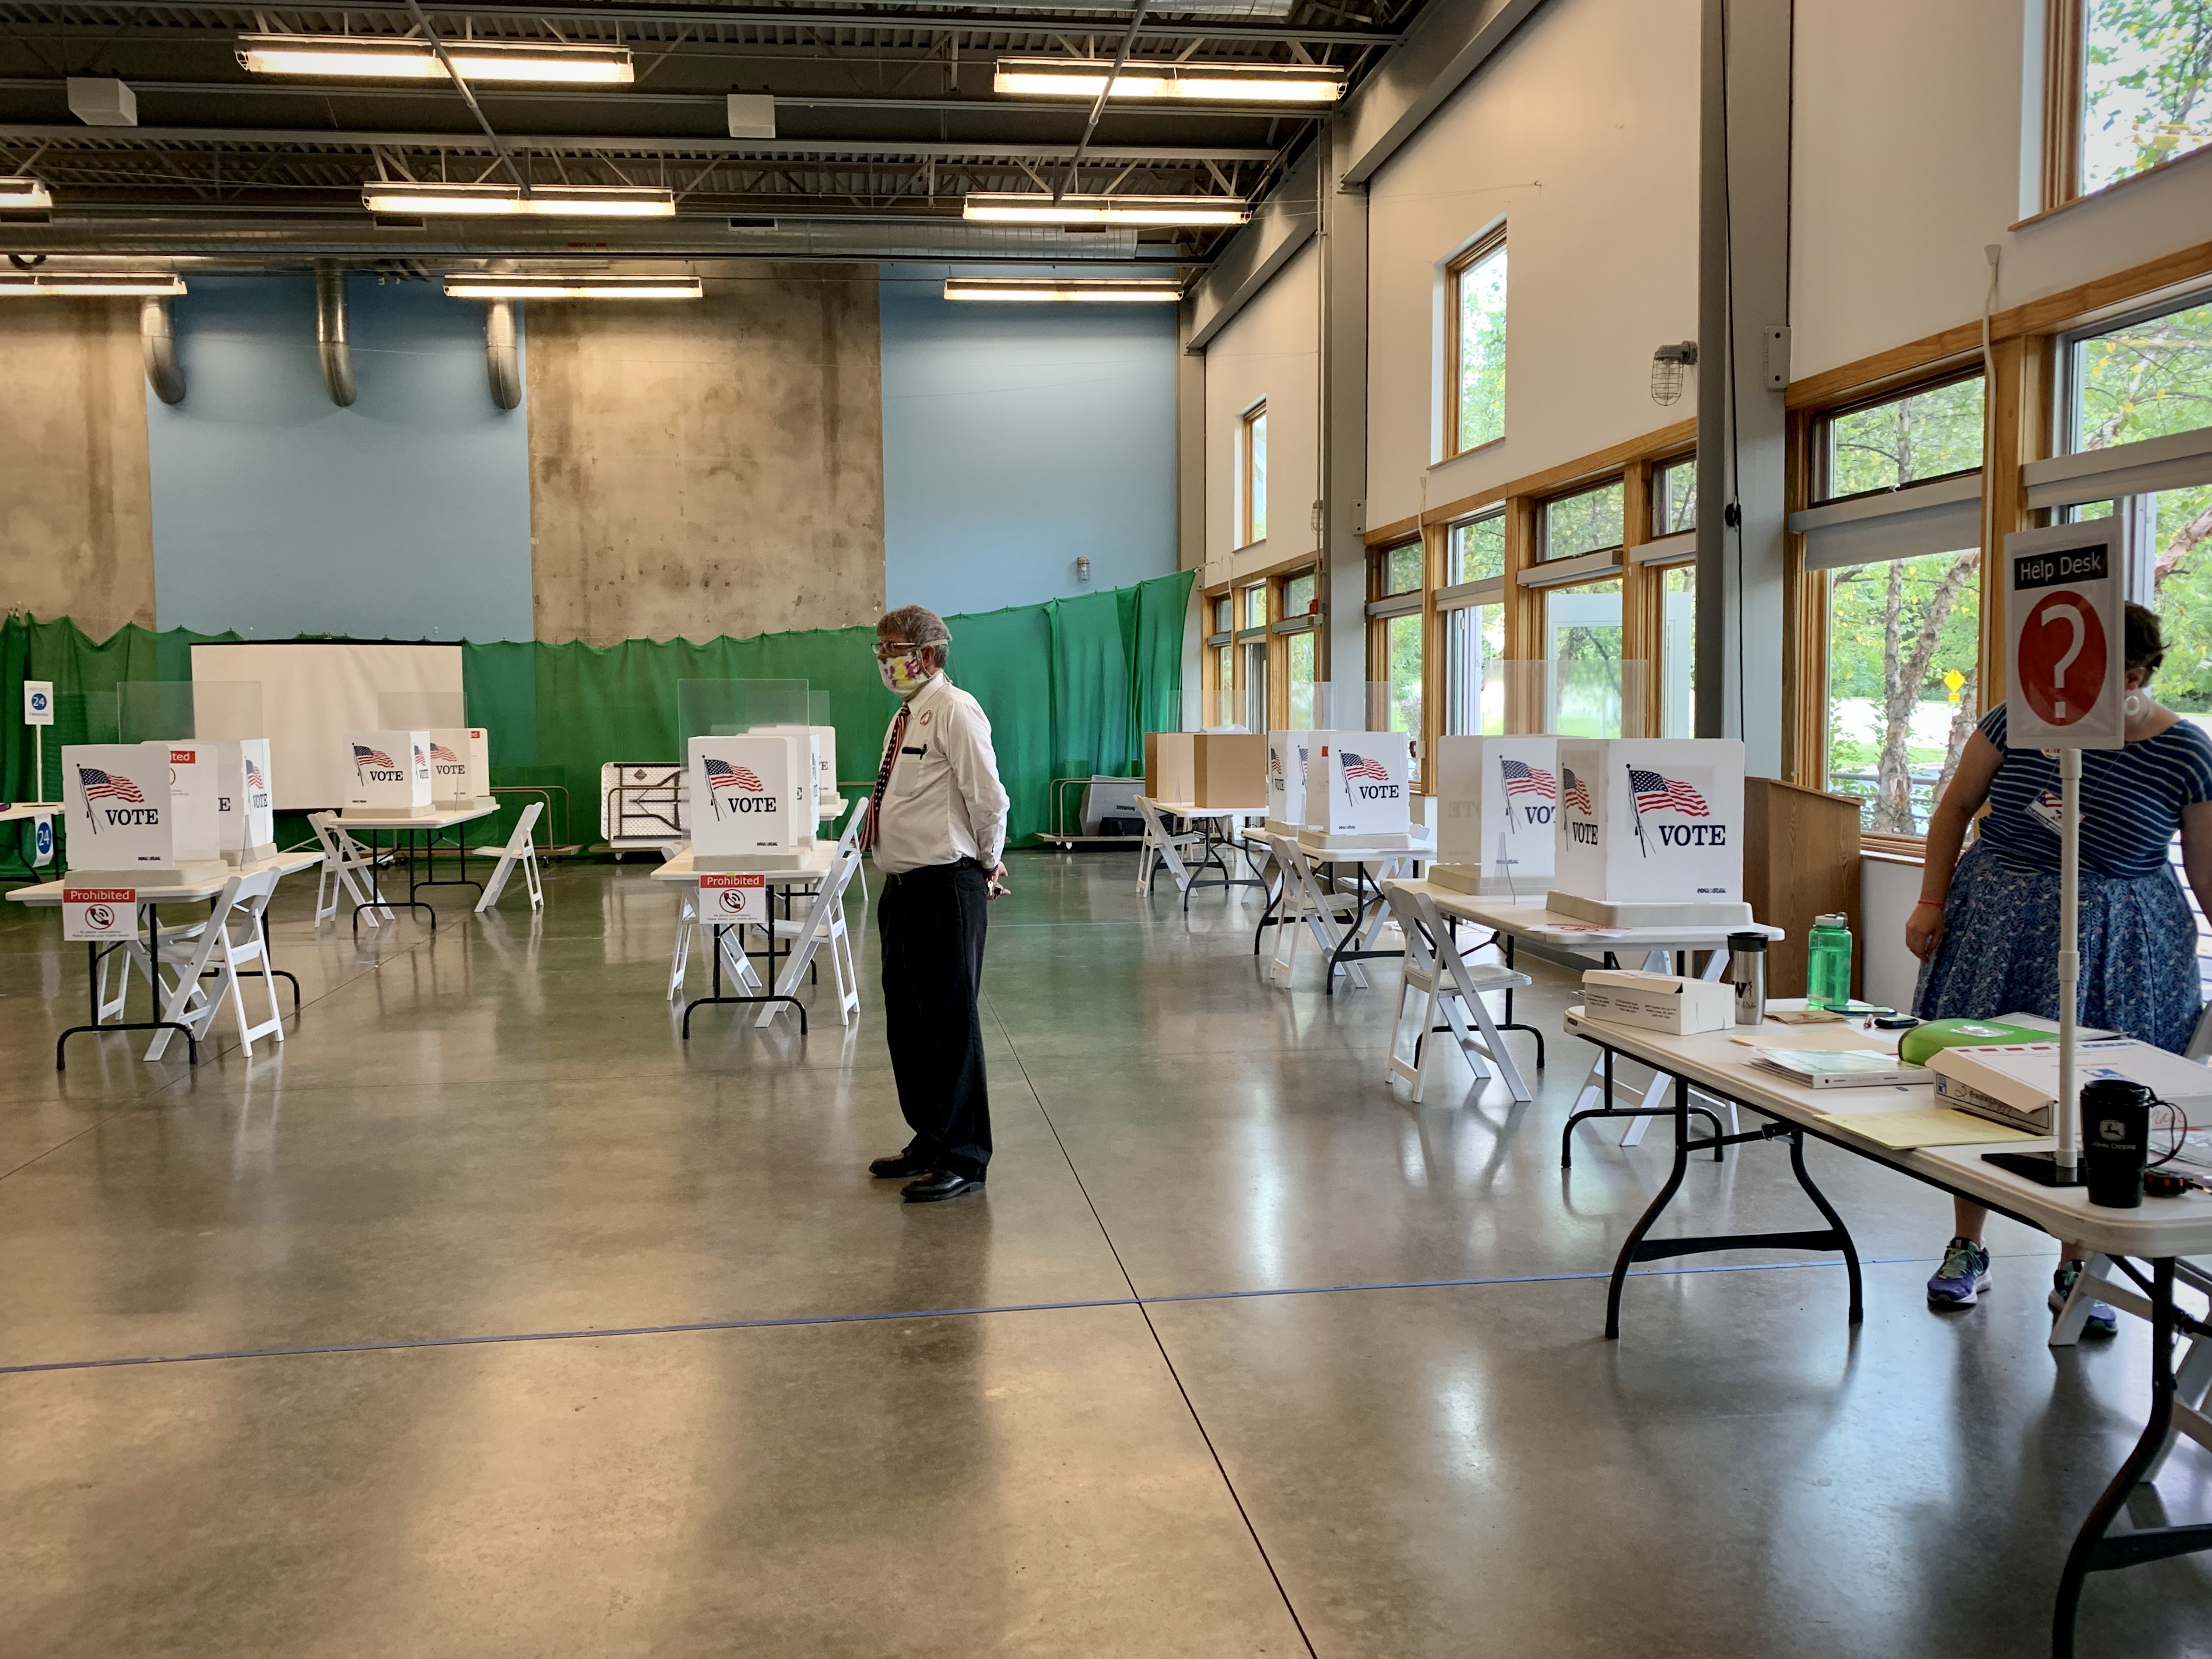 A poll worker stands amid the voting booths at the Girl Scouts of Michigan offices on West Maple Street in Kalamazoo, Michigan, on Tuesday, Aug. 4, 2020. (WWMT/Hannah Knowles)